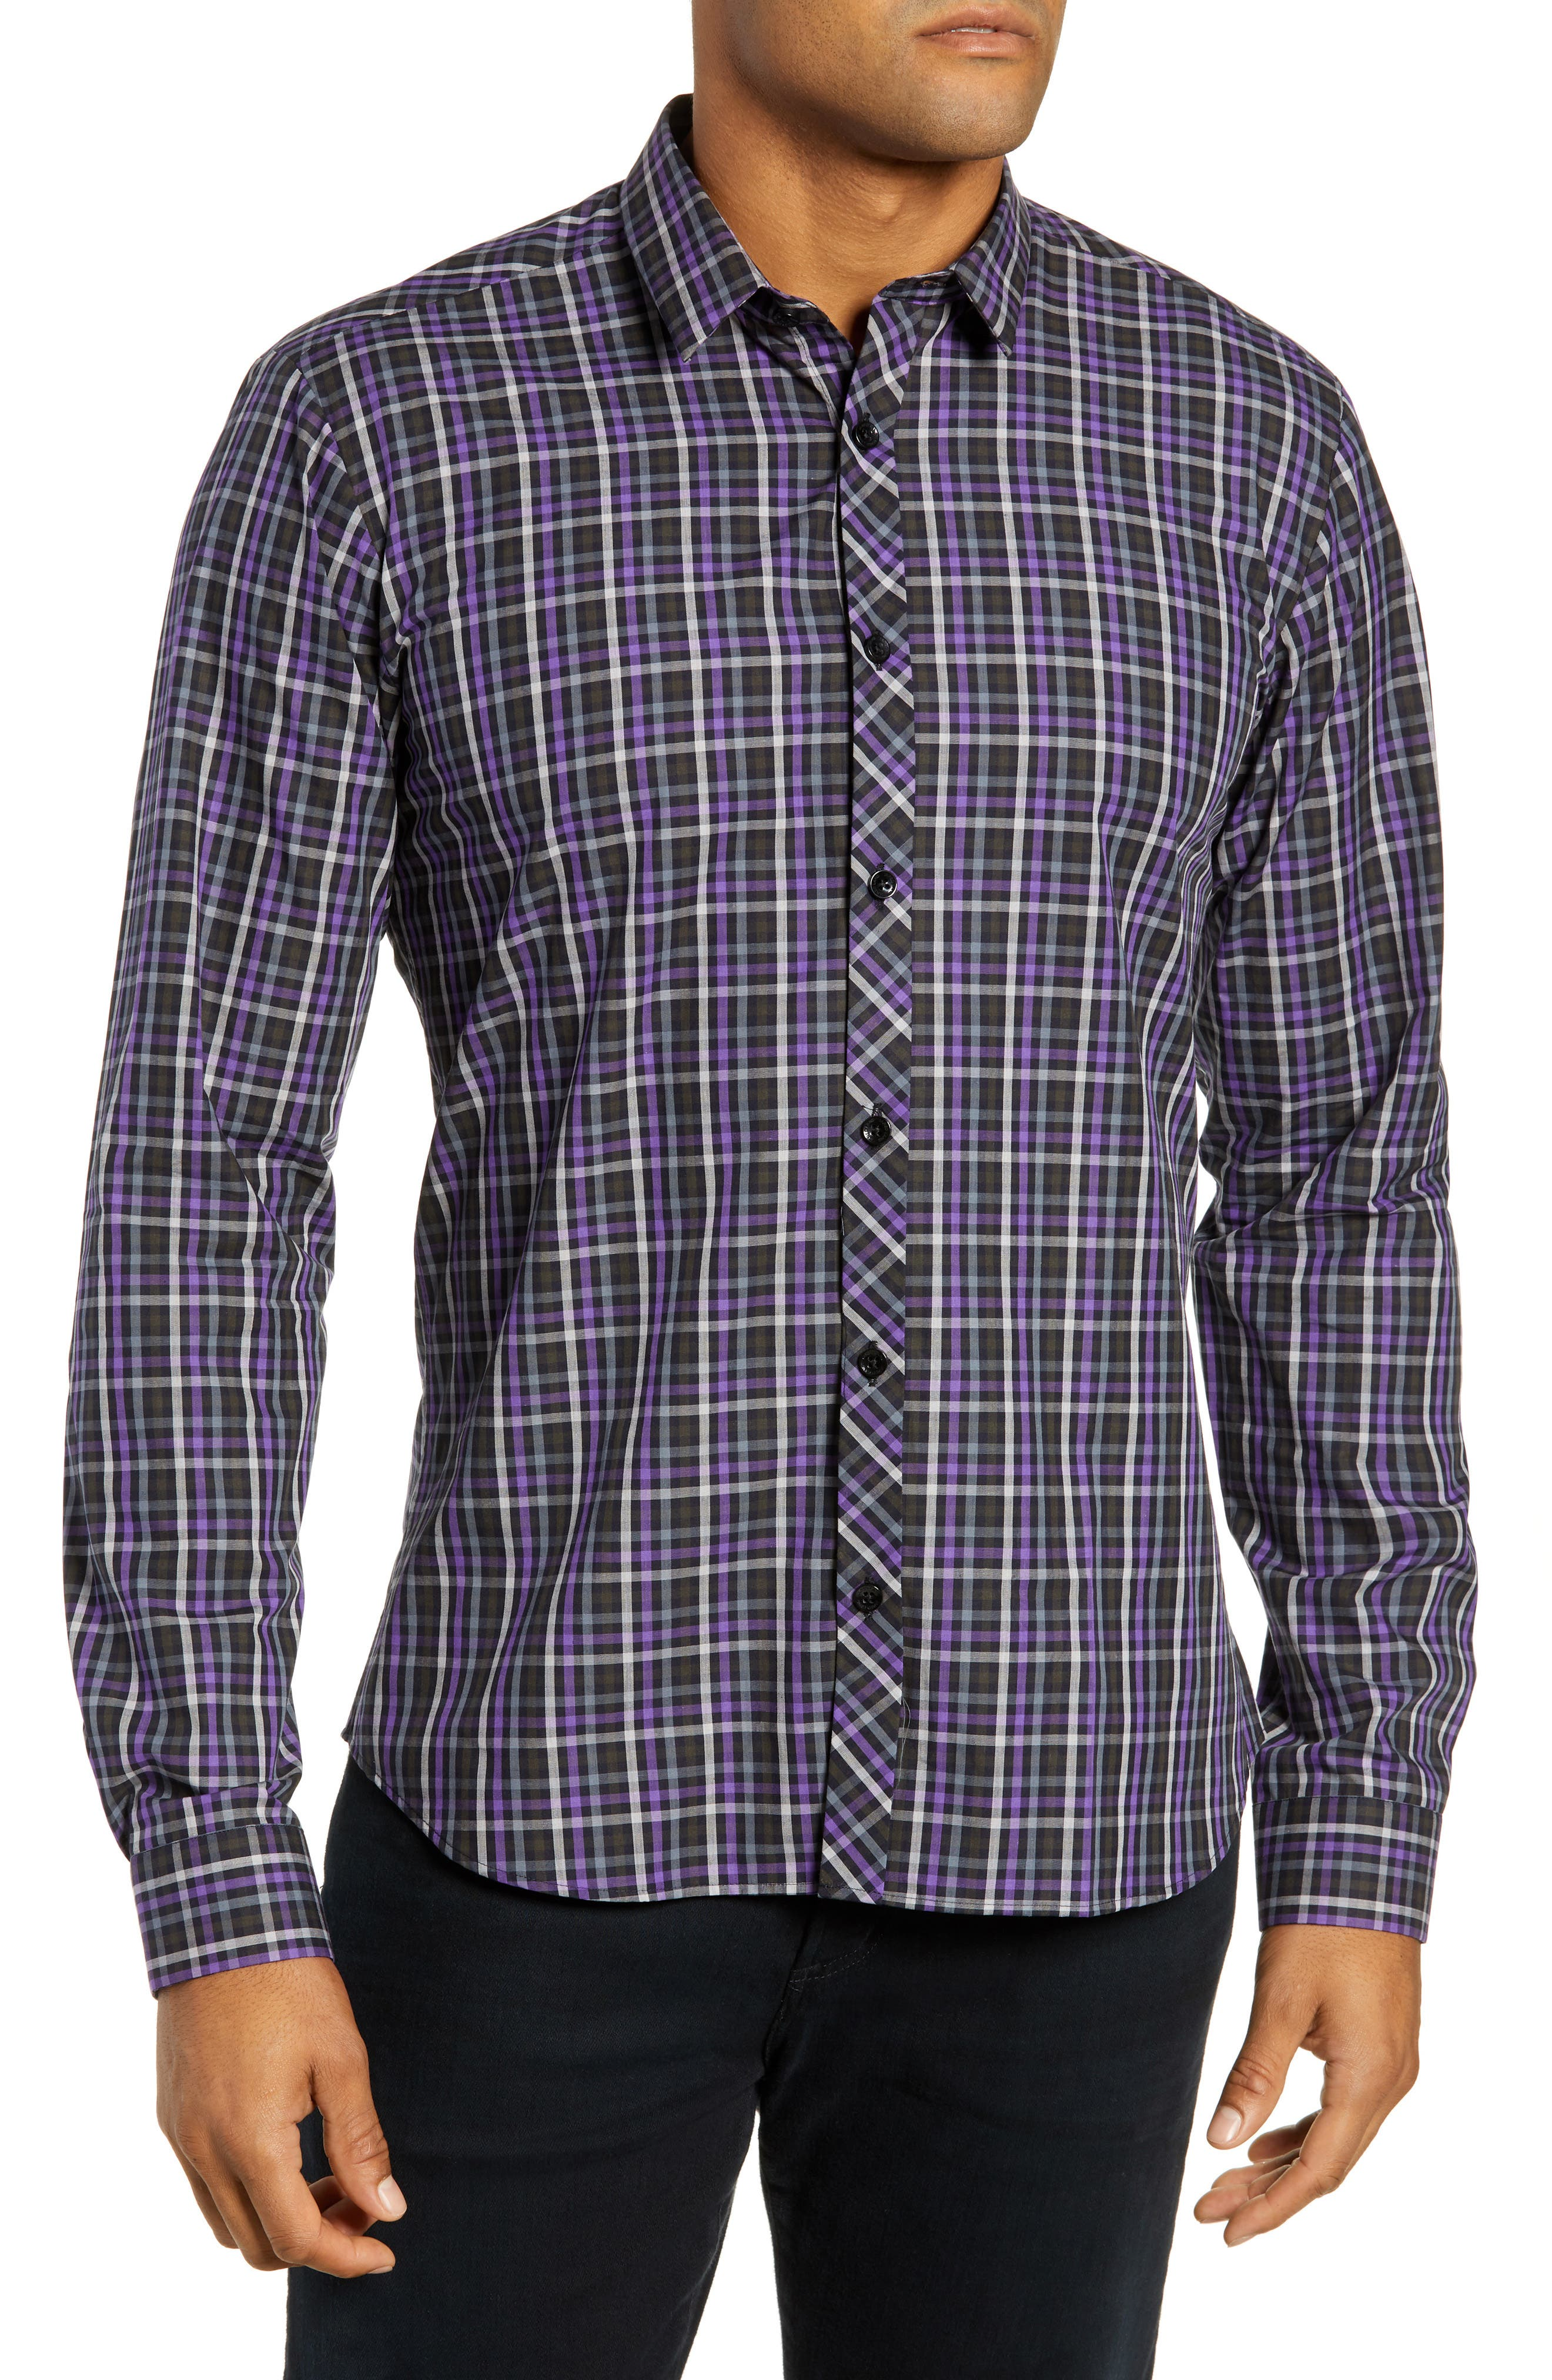 Trim Fit Sport Shirt,                         Main,                         color, PURPLE - BLACK MULTI CHECK